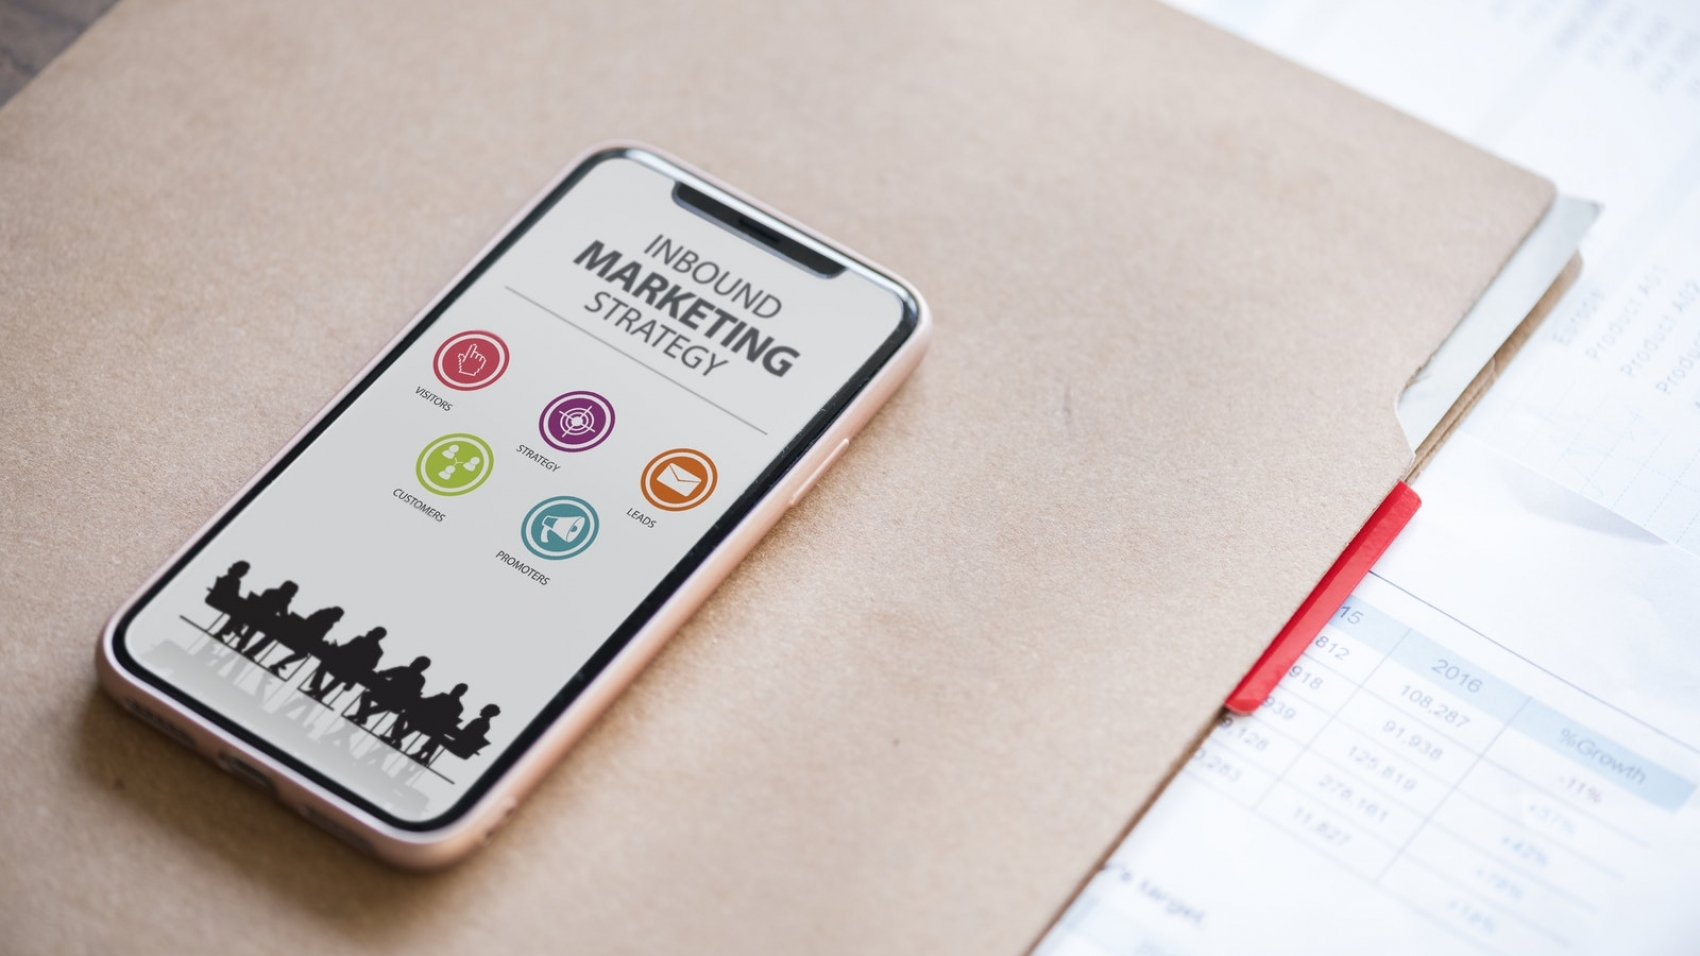 The knowledge process outsourcing industry denoted by a smartphone showing an image of Inbound Marketing